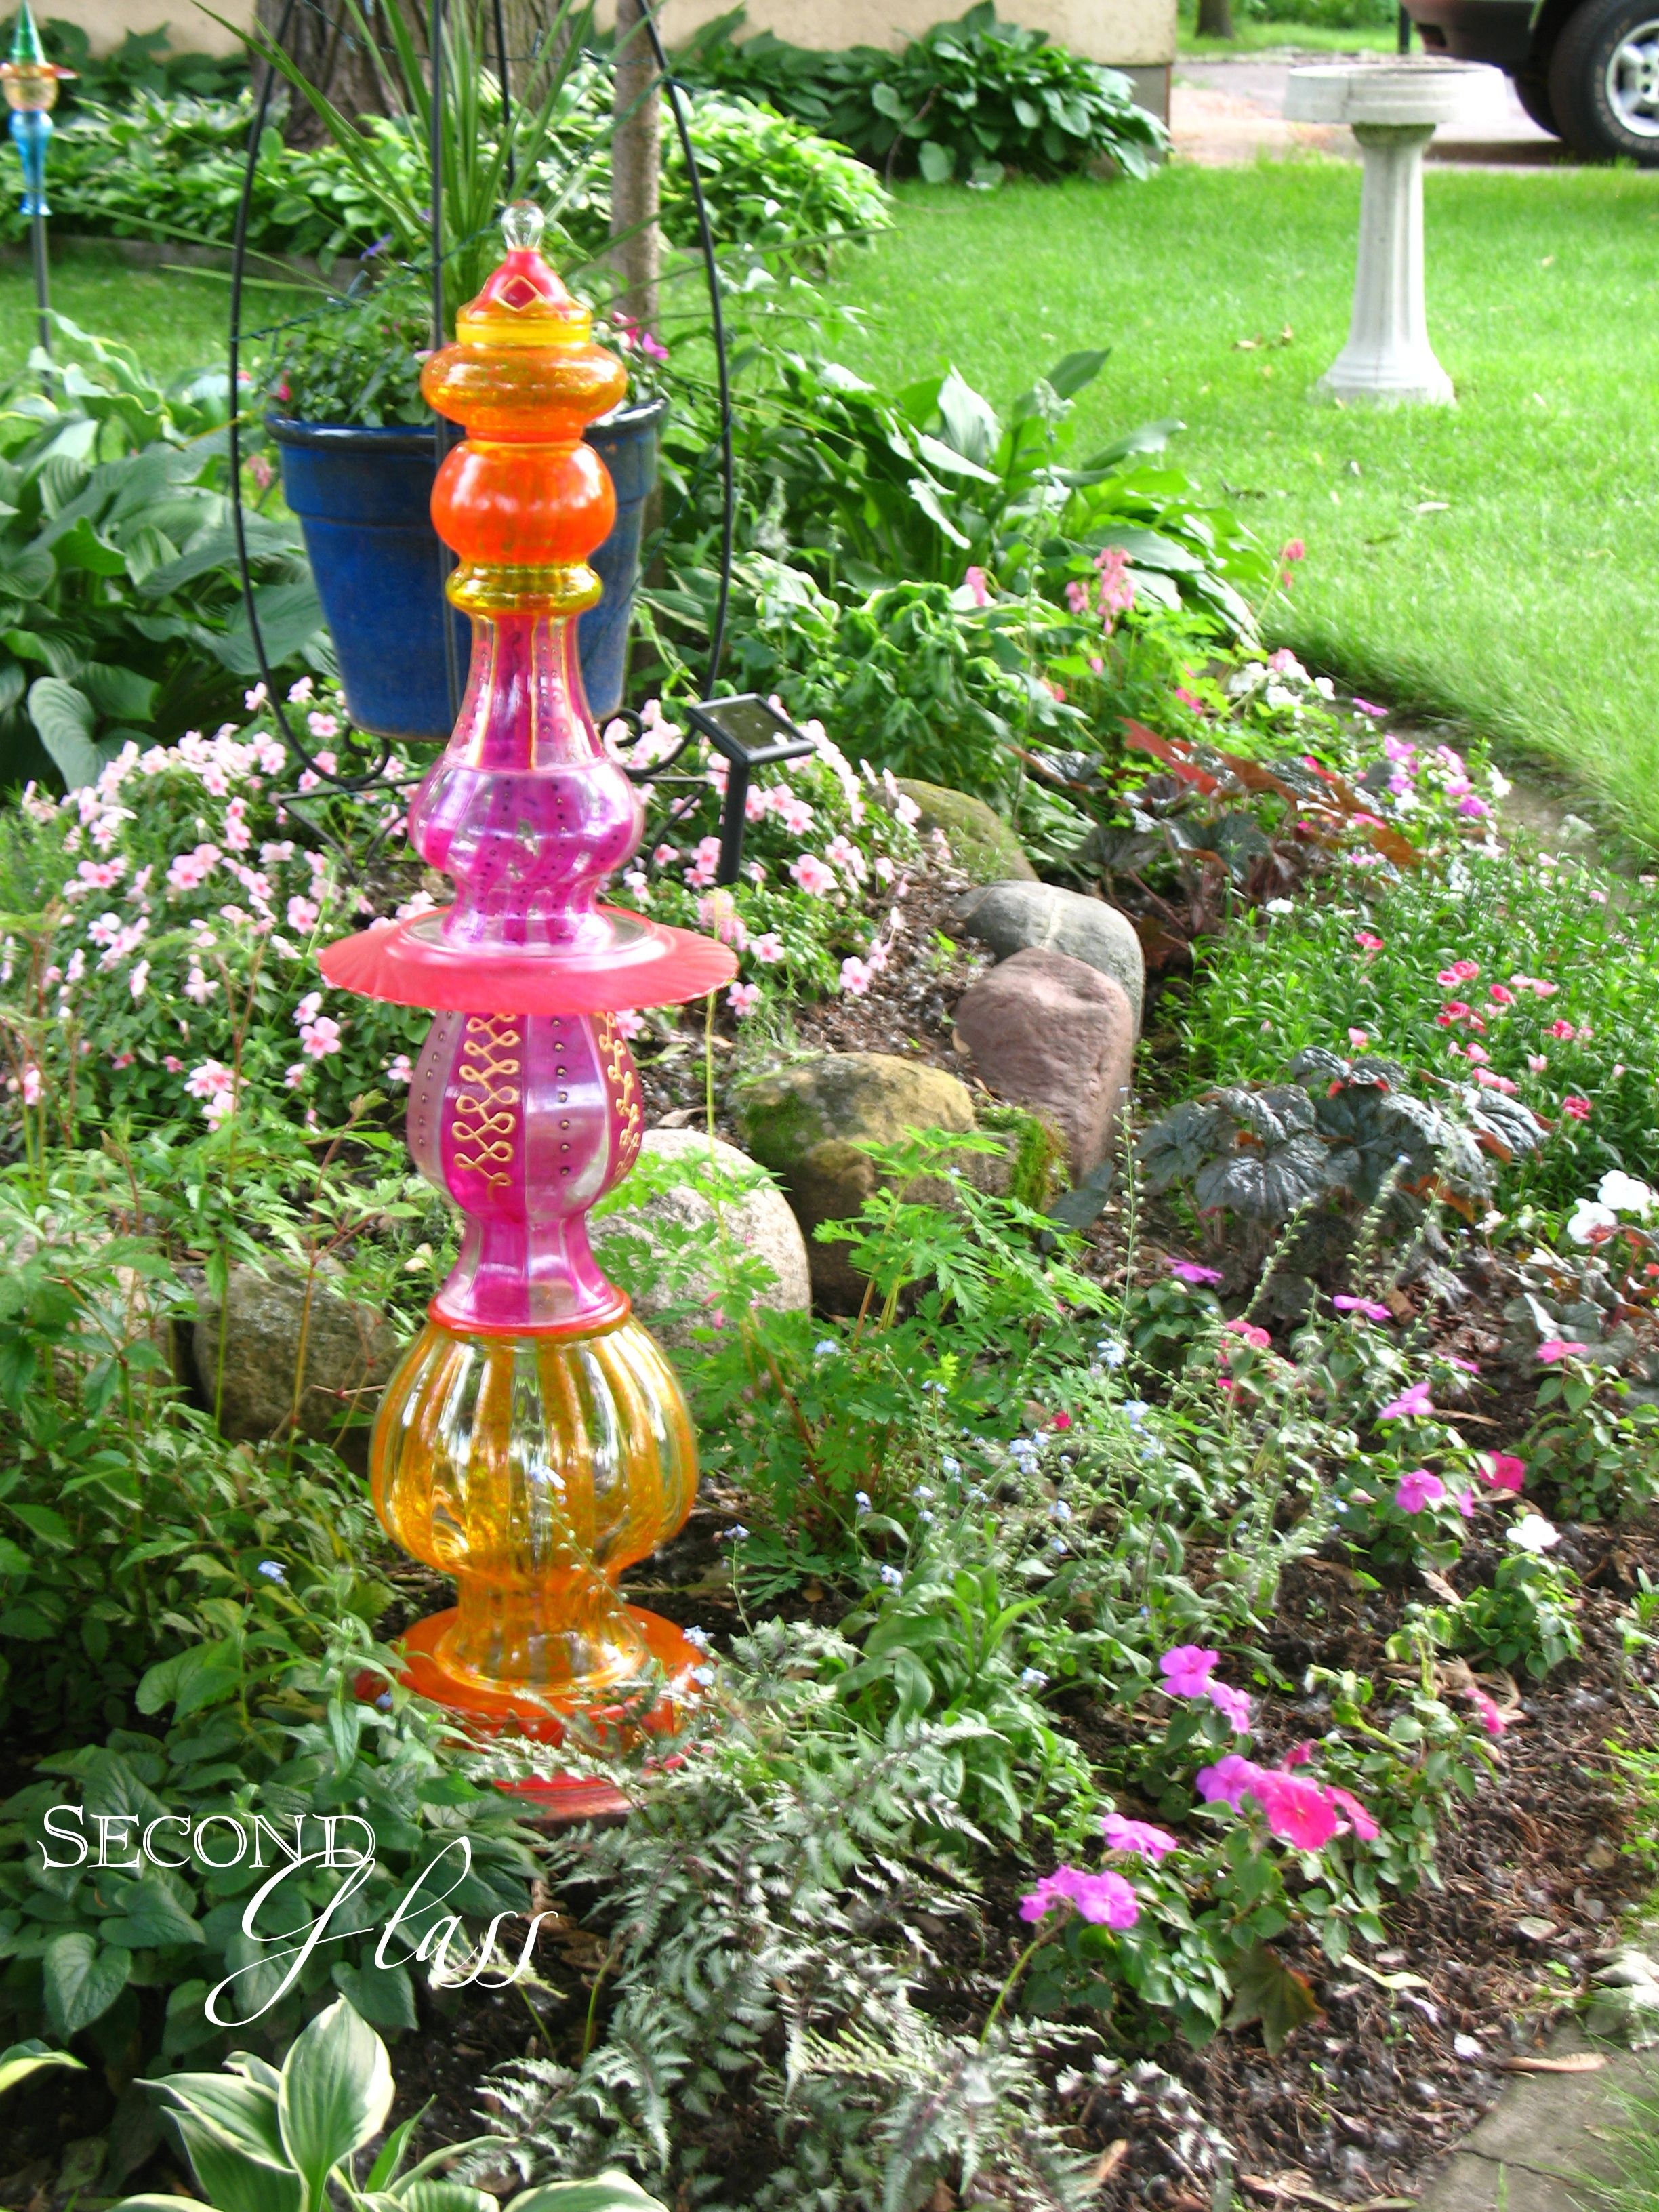 A colorful garden totem created by second glass garden art for Flower garden ornaments